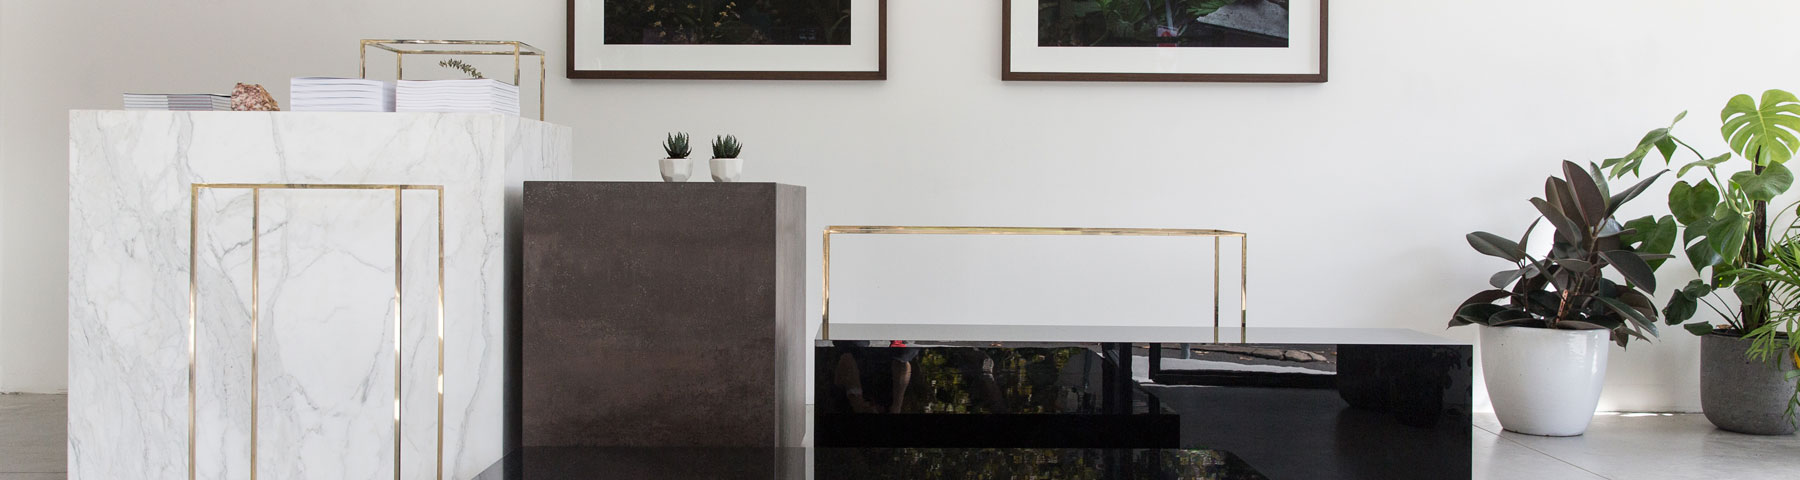 St-Cloche-Gallery-book-matched-cararra-marble-stone-benchtop-neolith-countertop-benchmark-sydneys-best-stonemasons